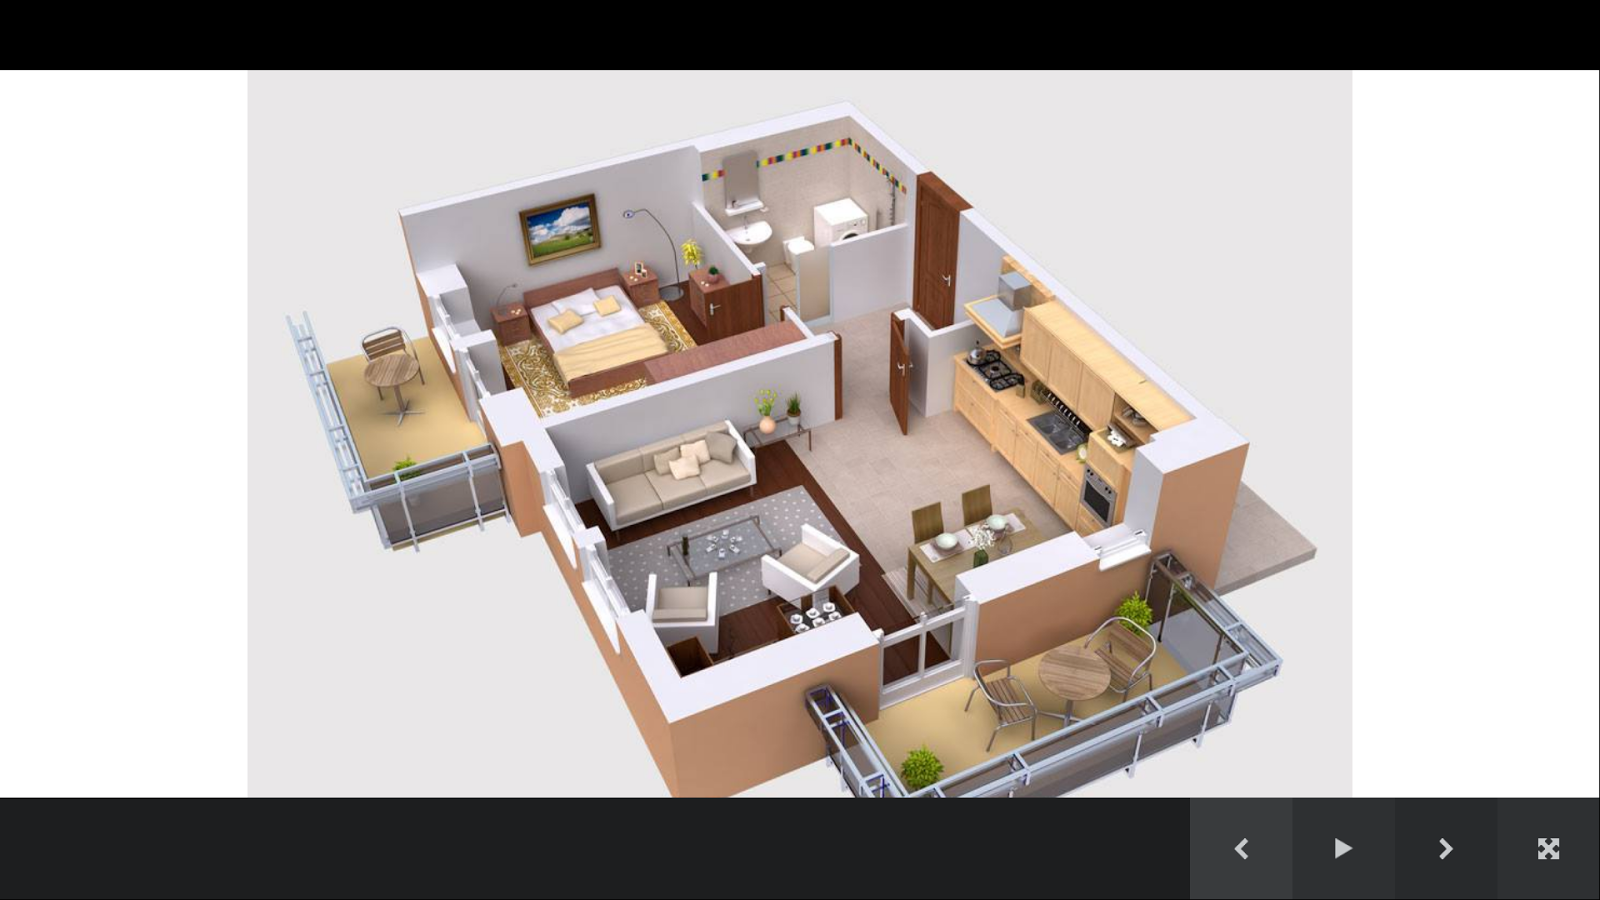 2d Room Planner 3d House Plans App Ranking And Store Data App Annie